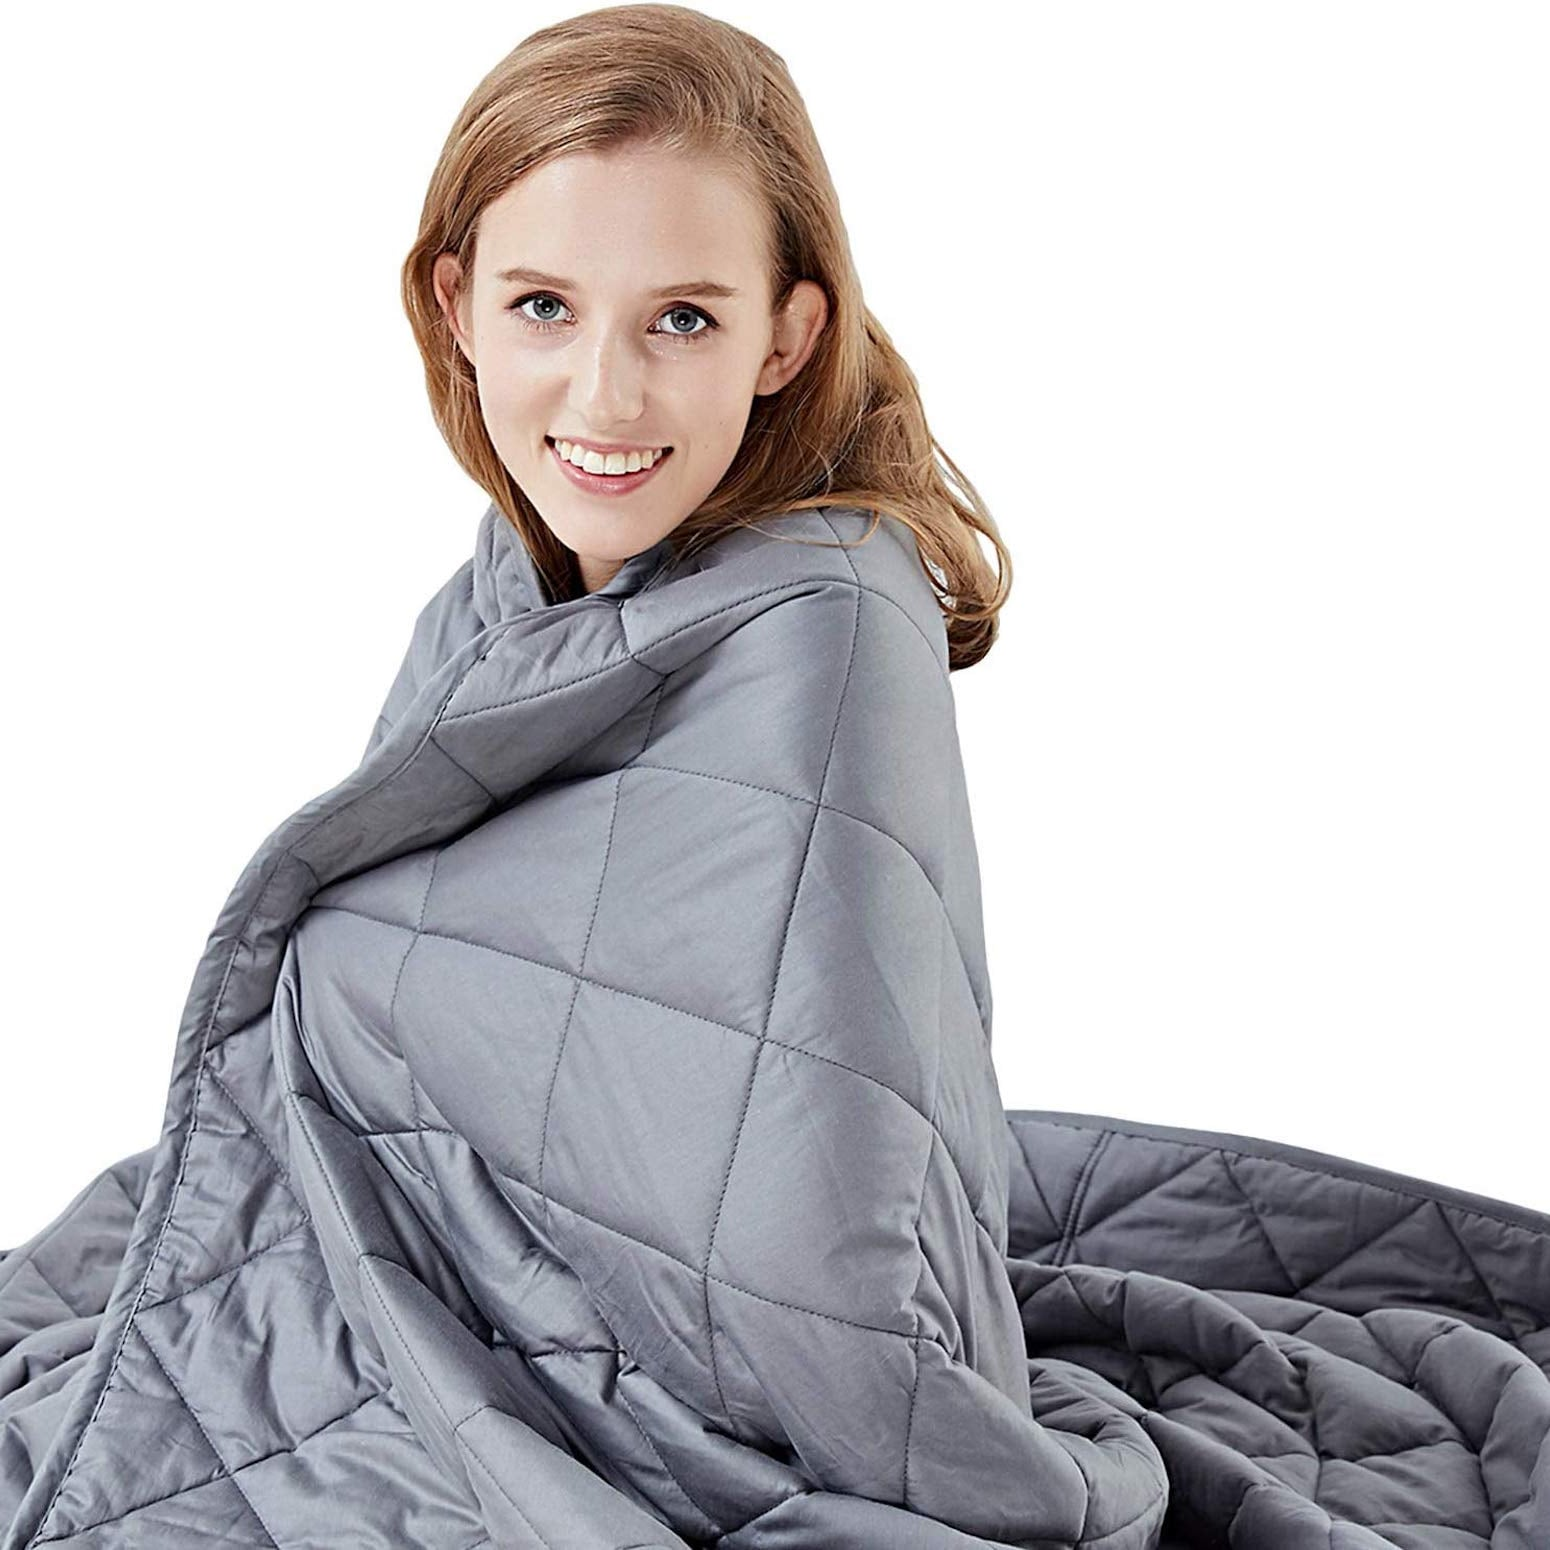 Weighted Blanket Black Friday Sale On Amazon 2019 Popsugar Fitness